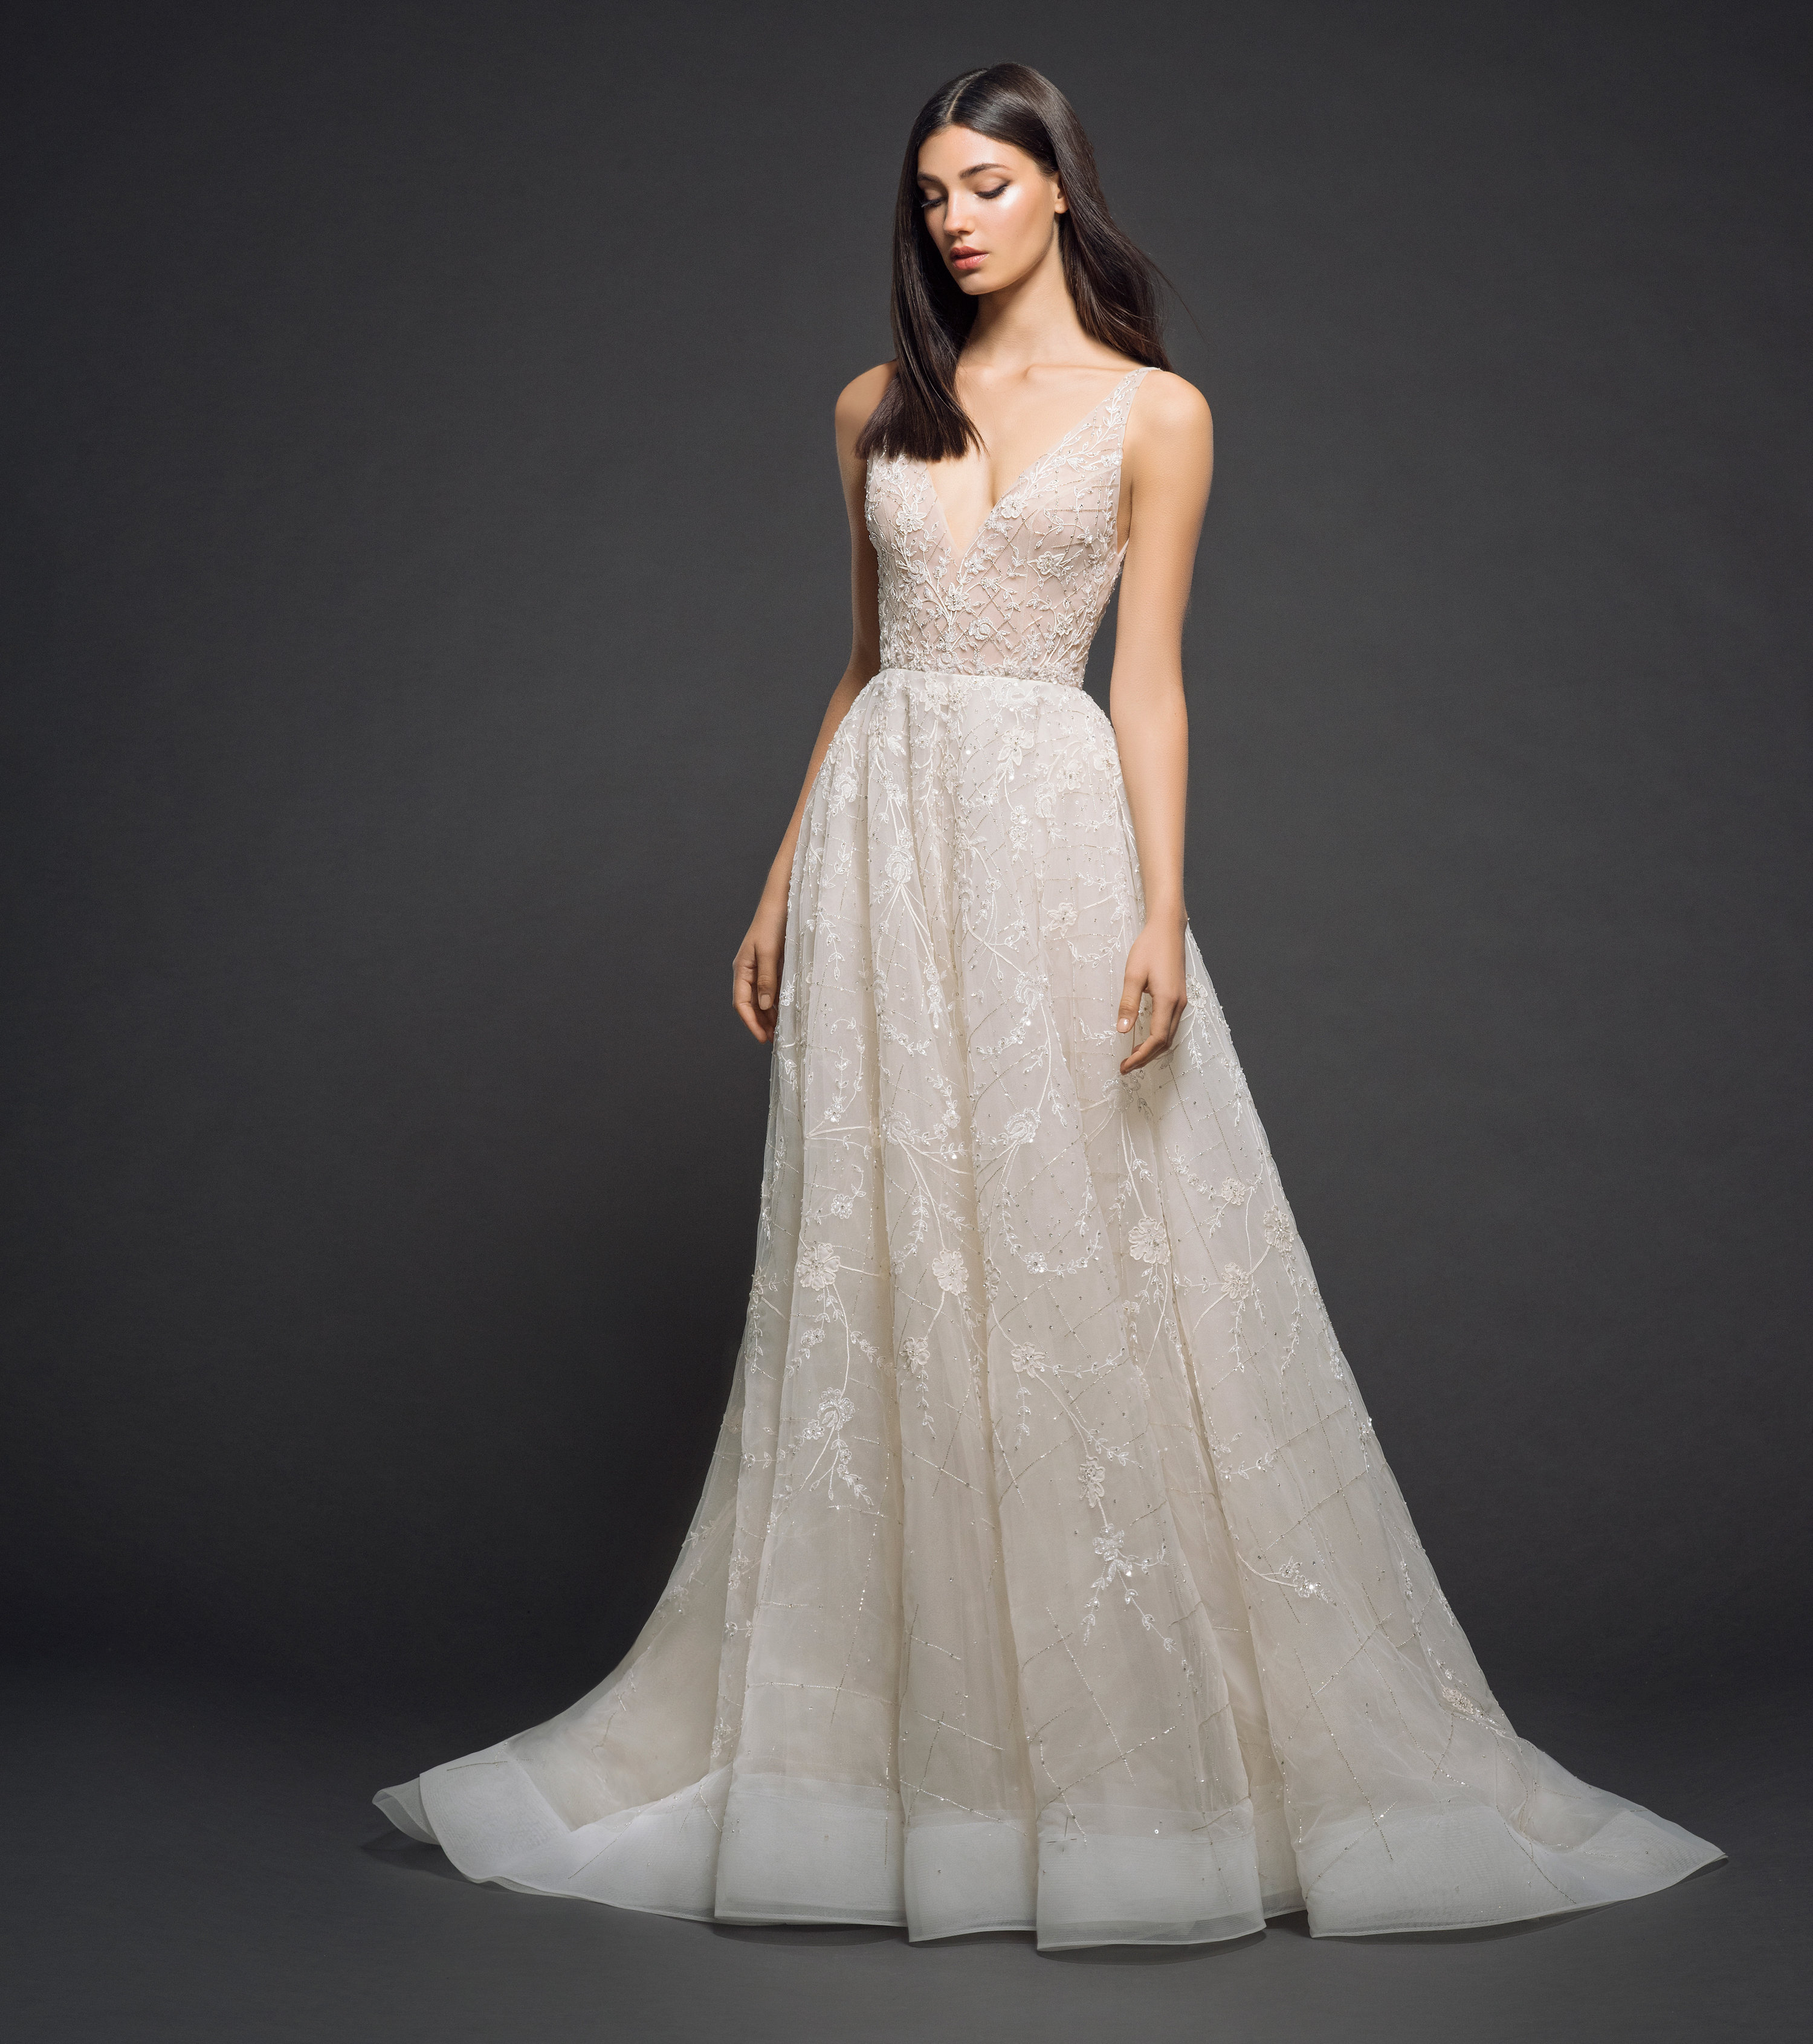 Wedding Gown Stores Nyc: Beaded V-neck Bodice A-line Wedding Dress